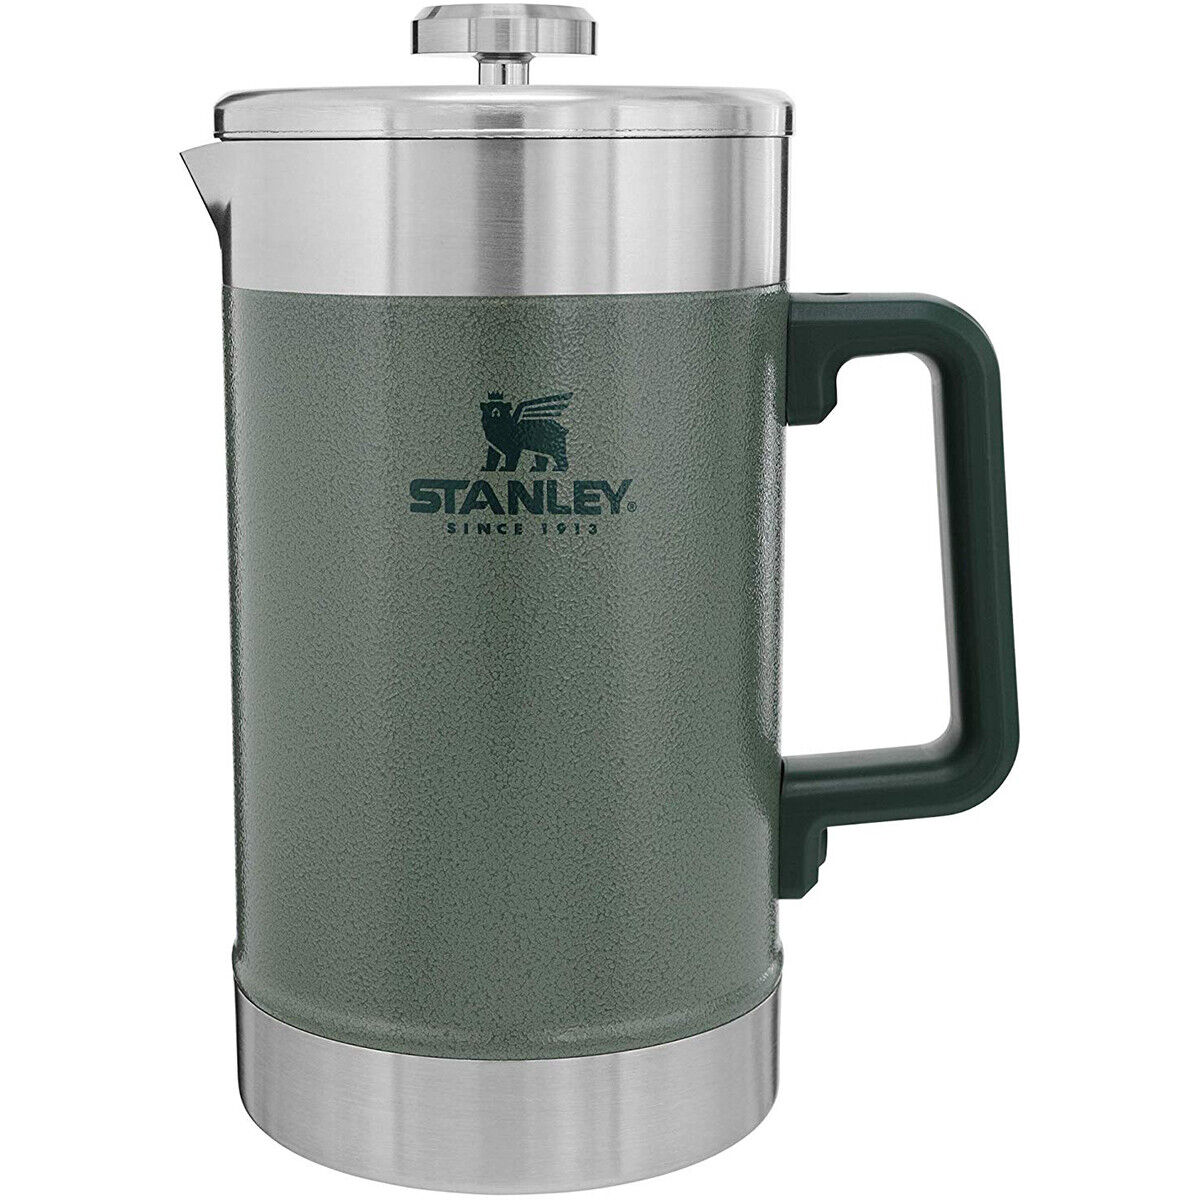 Stanley Classic 48 oz (environ 1360.75 g) Stay Chaud French Press Cafetière-Hammertone vert